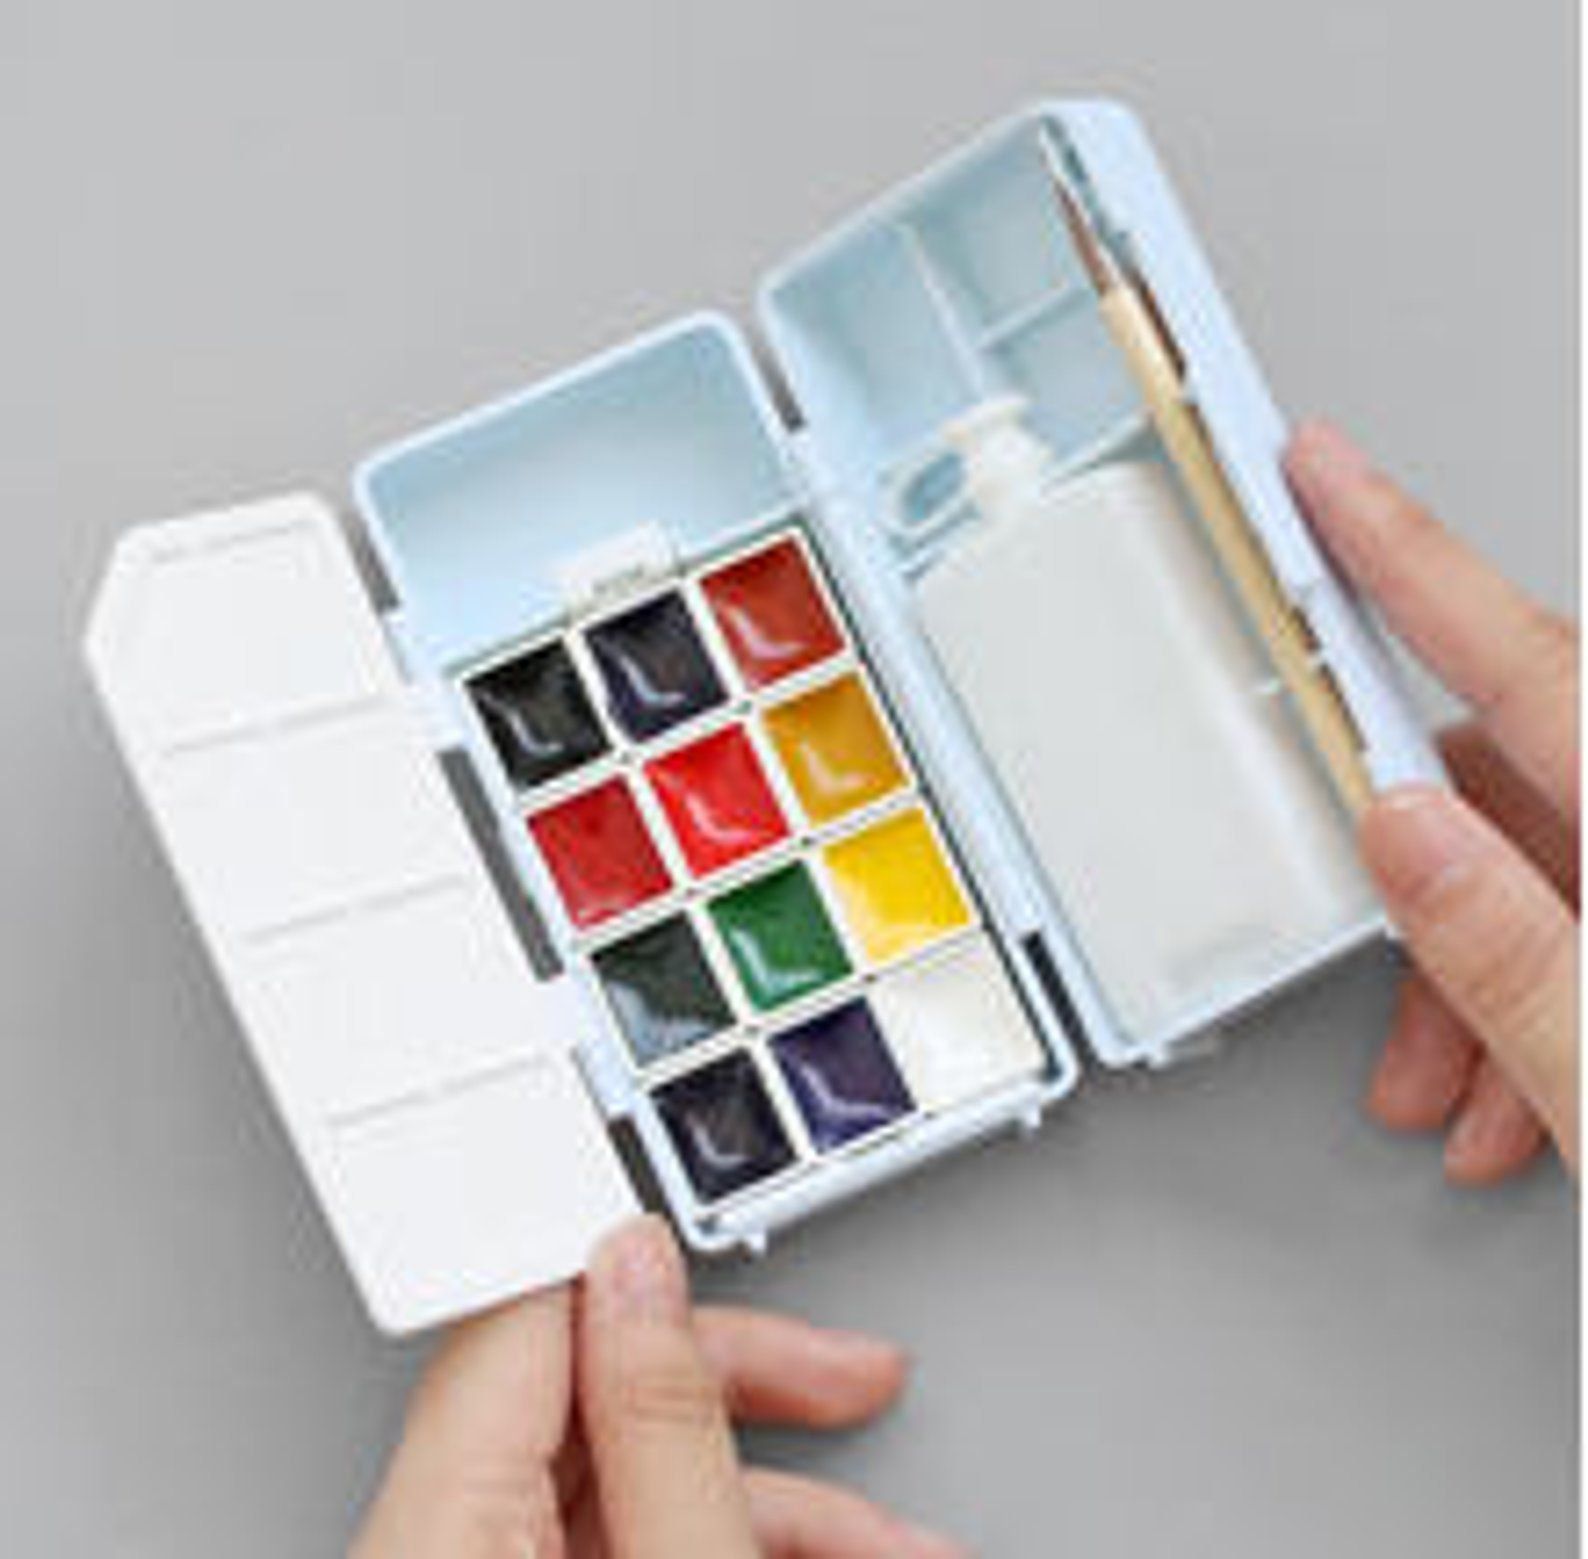 36in1 Watercolor Paint Sets Art Set For Kids Watercolour